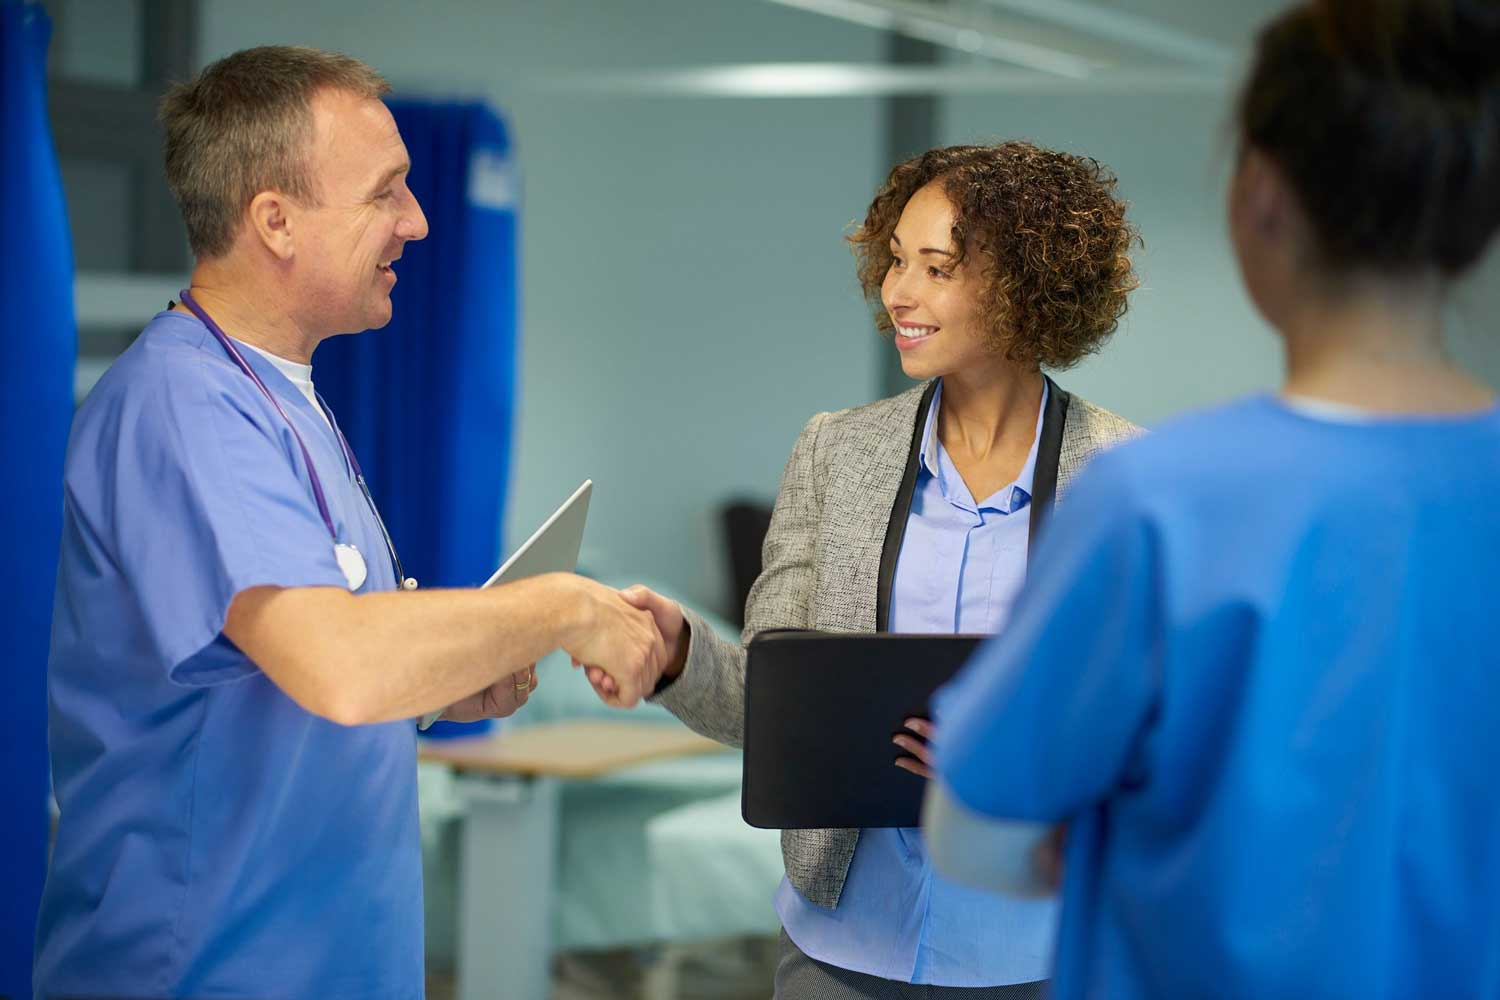 nurse leader and clinical staff